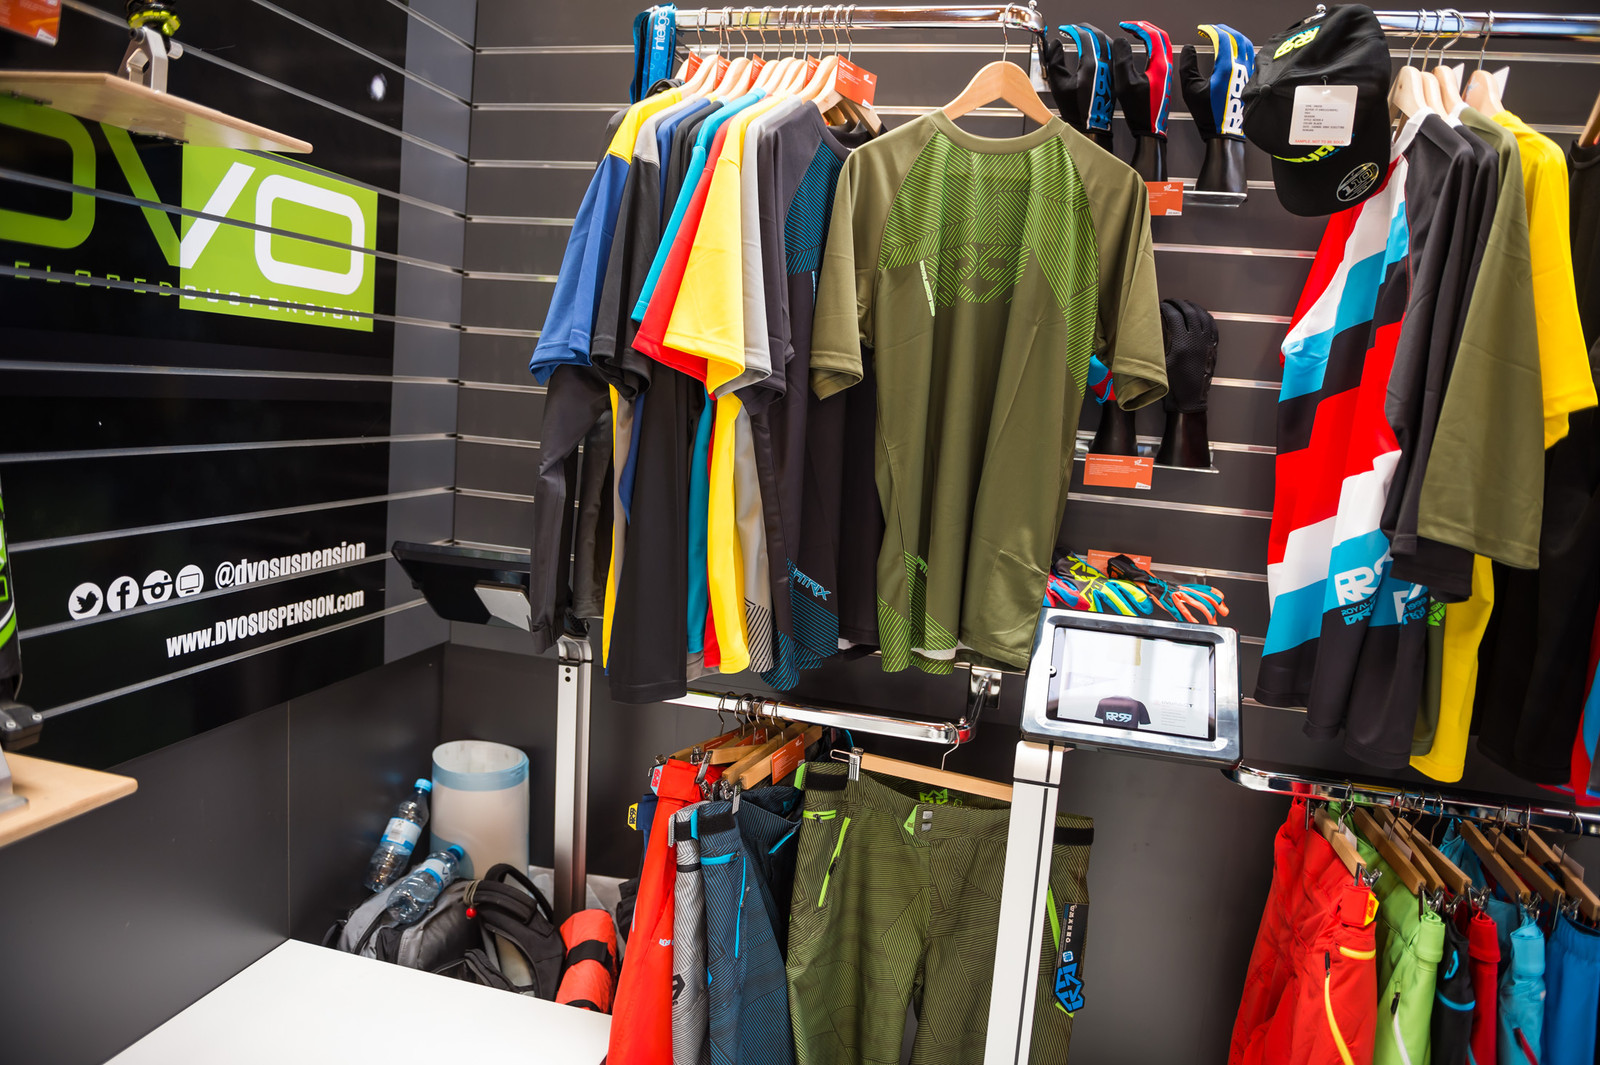 Royal Matrix Short, Jersey and Jacket - EUROBIKE - 2017 Mountain Bike Apparel and Protective Gear - Mountain Biking Pictures - Vital MTB